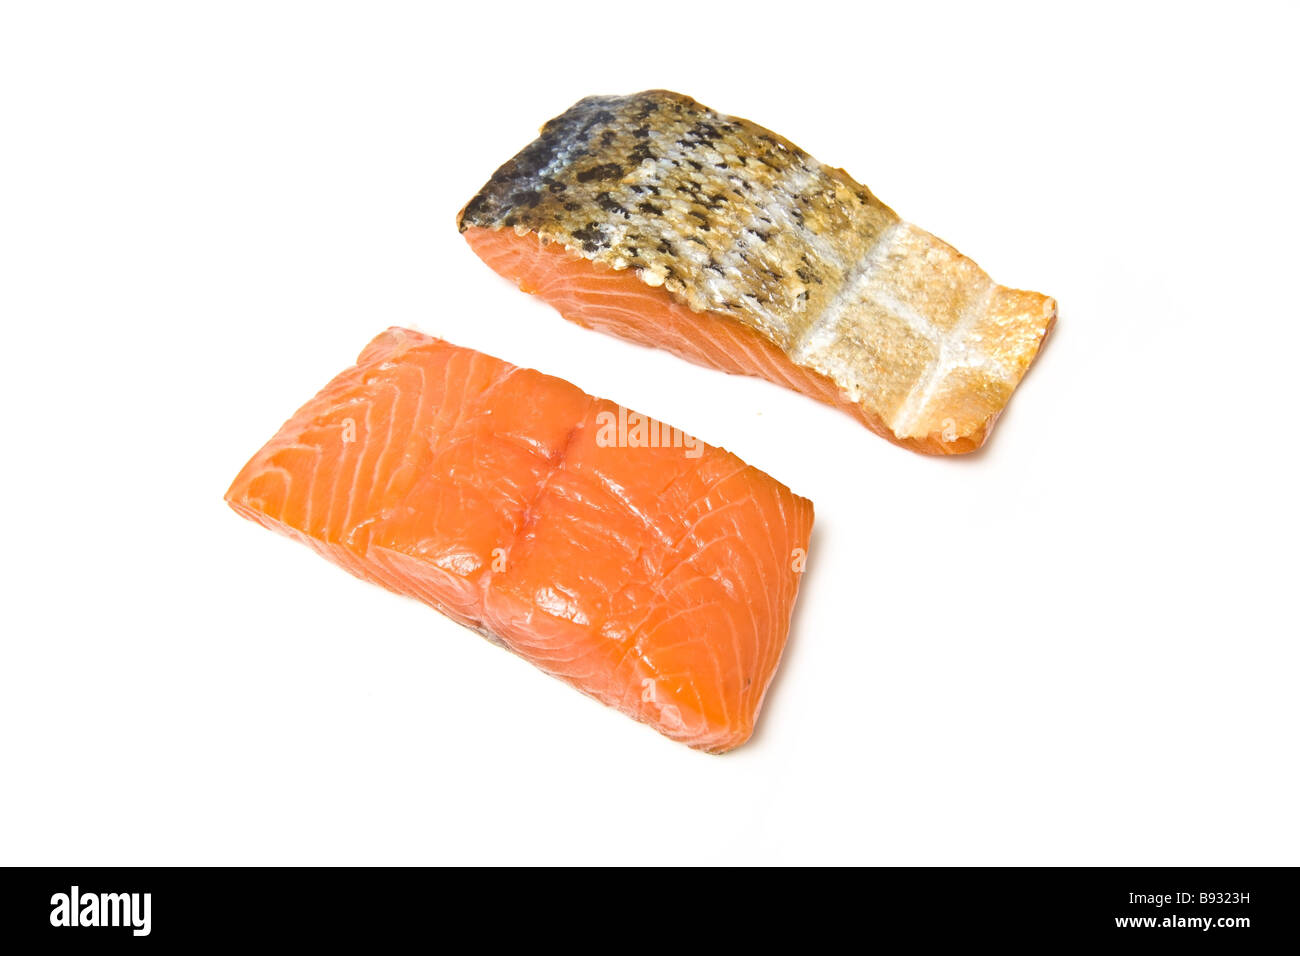 Smoked salmon fillets isolated on a white studio background - Stock Image